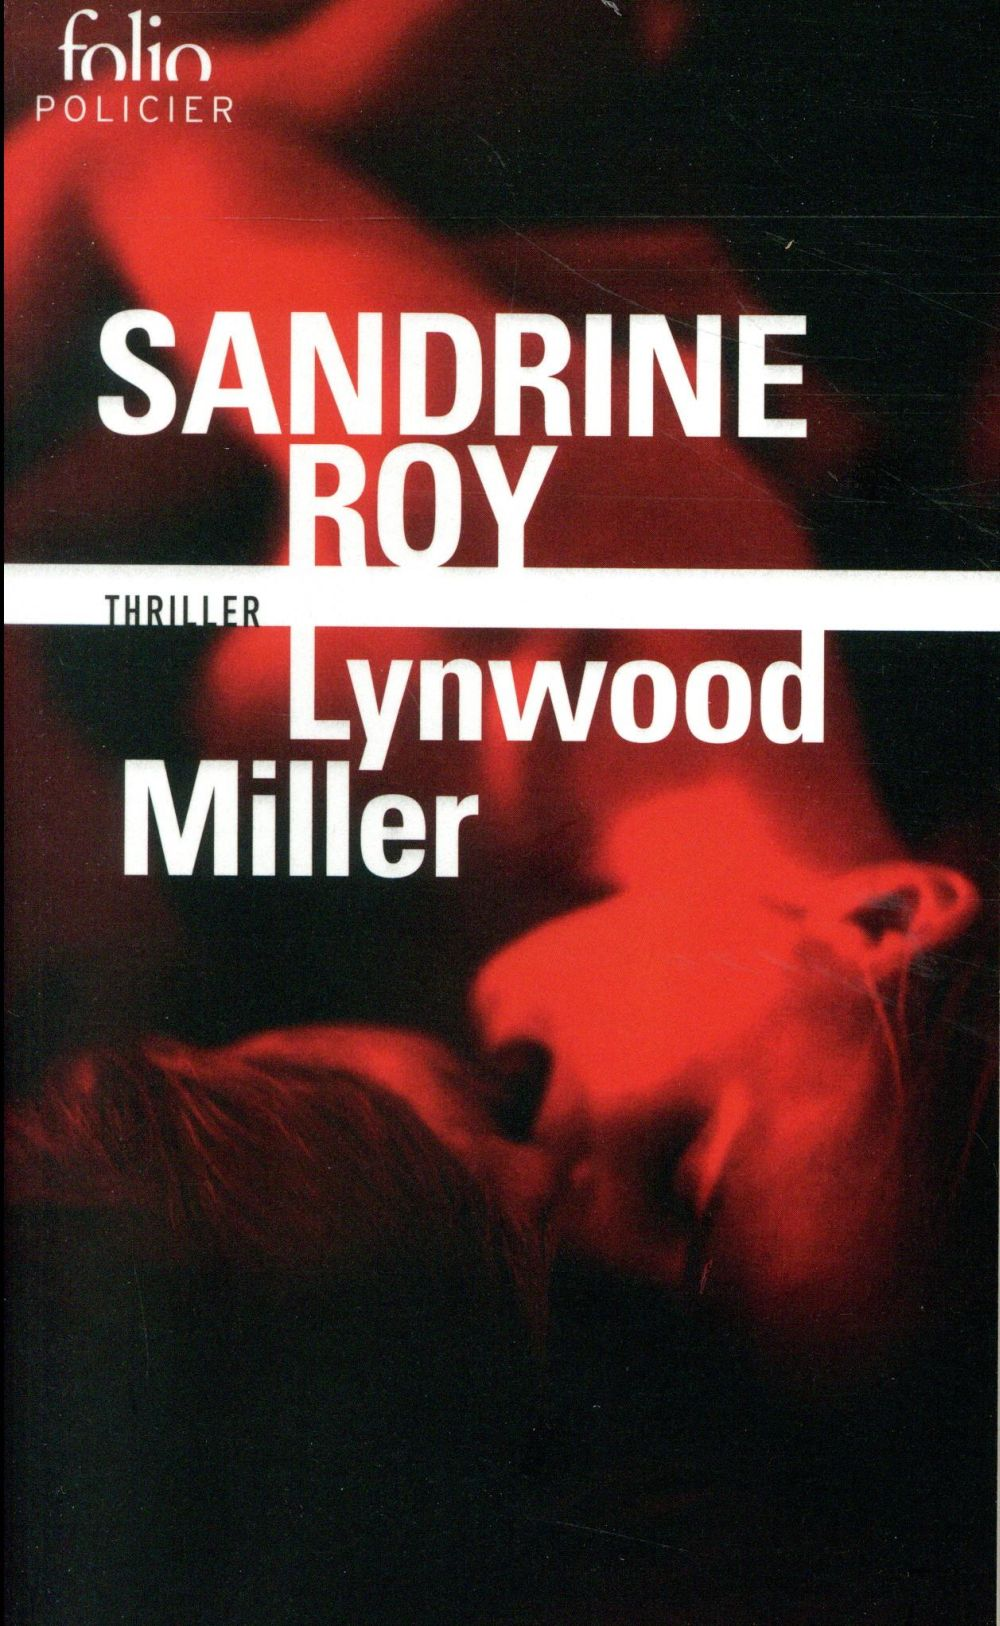 LYNWOOD MILLER